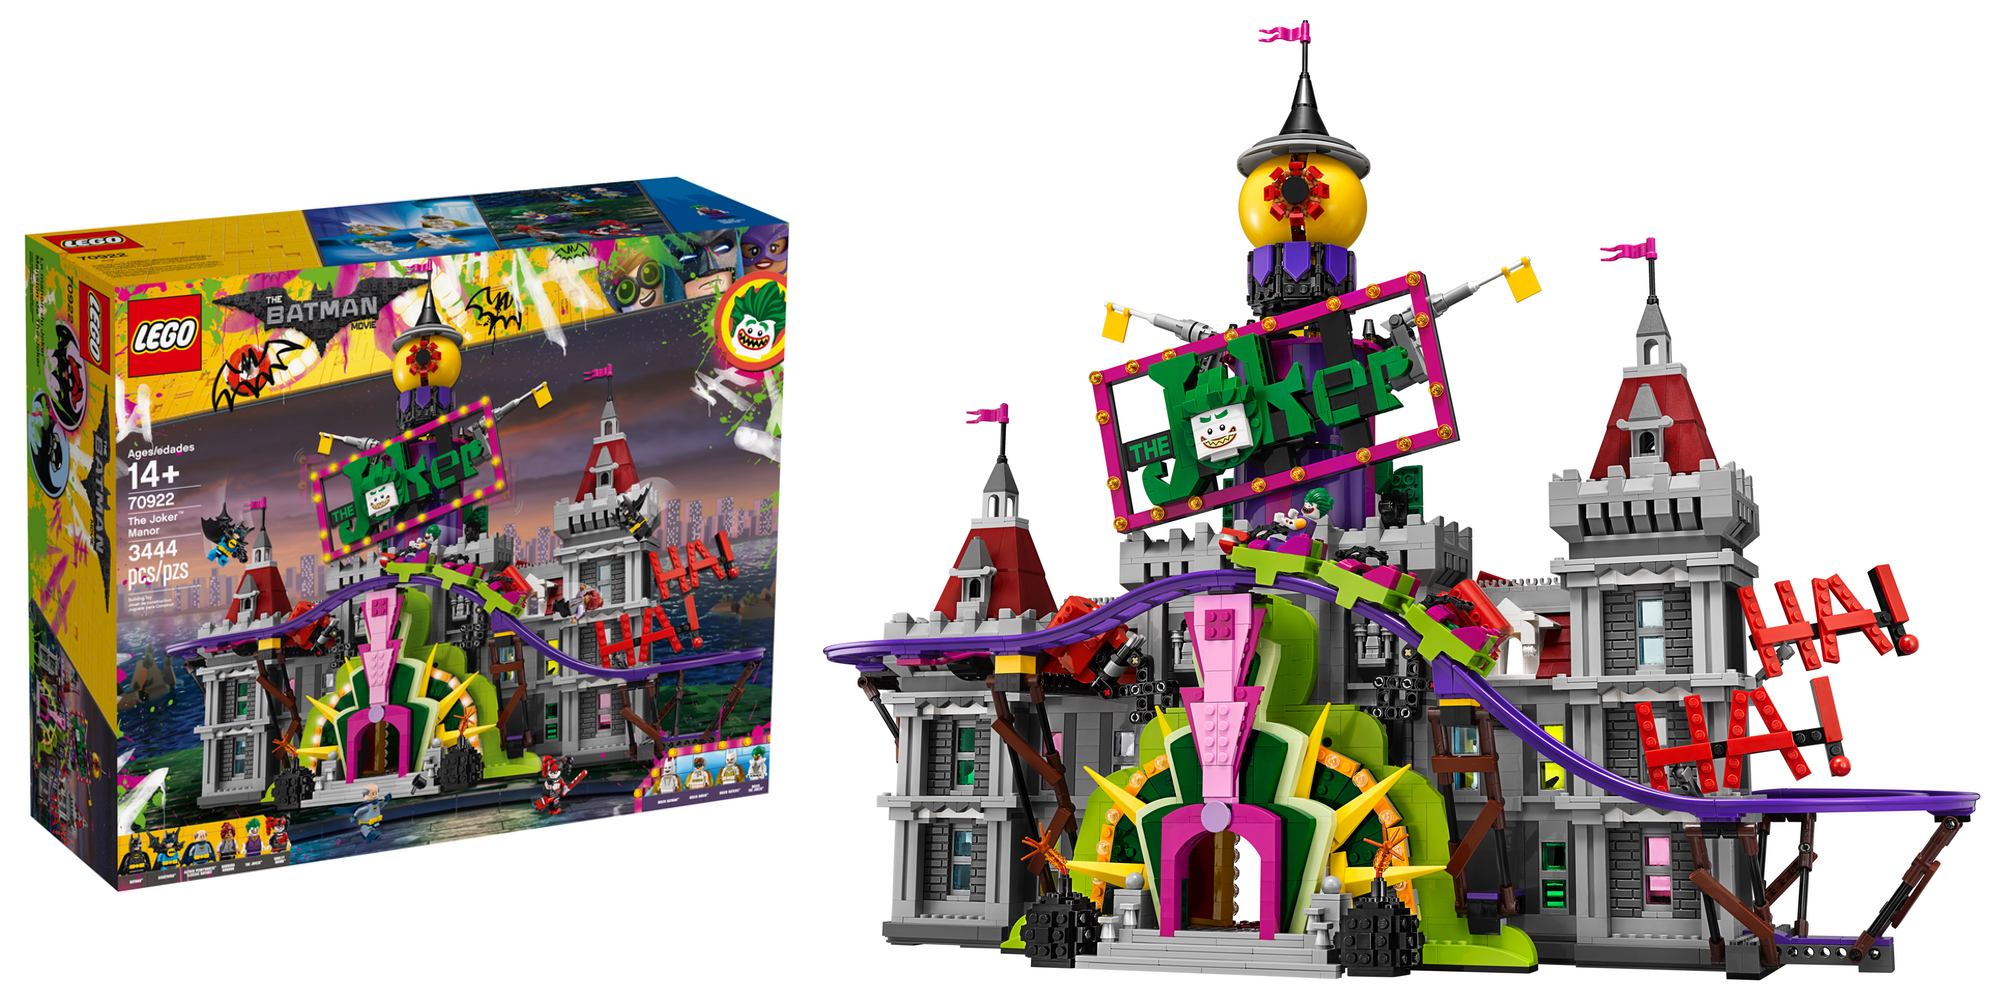 lego unveils new batman themed 3 400 piece joker manor set w 10 minifigures and more 9to5toys